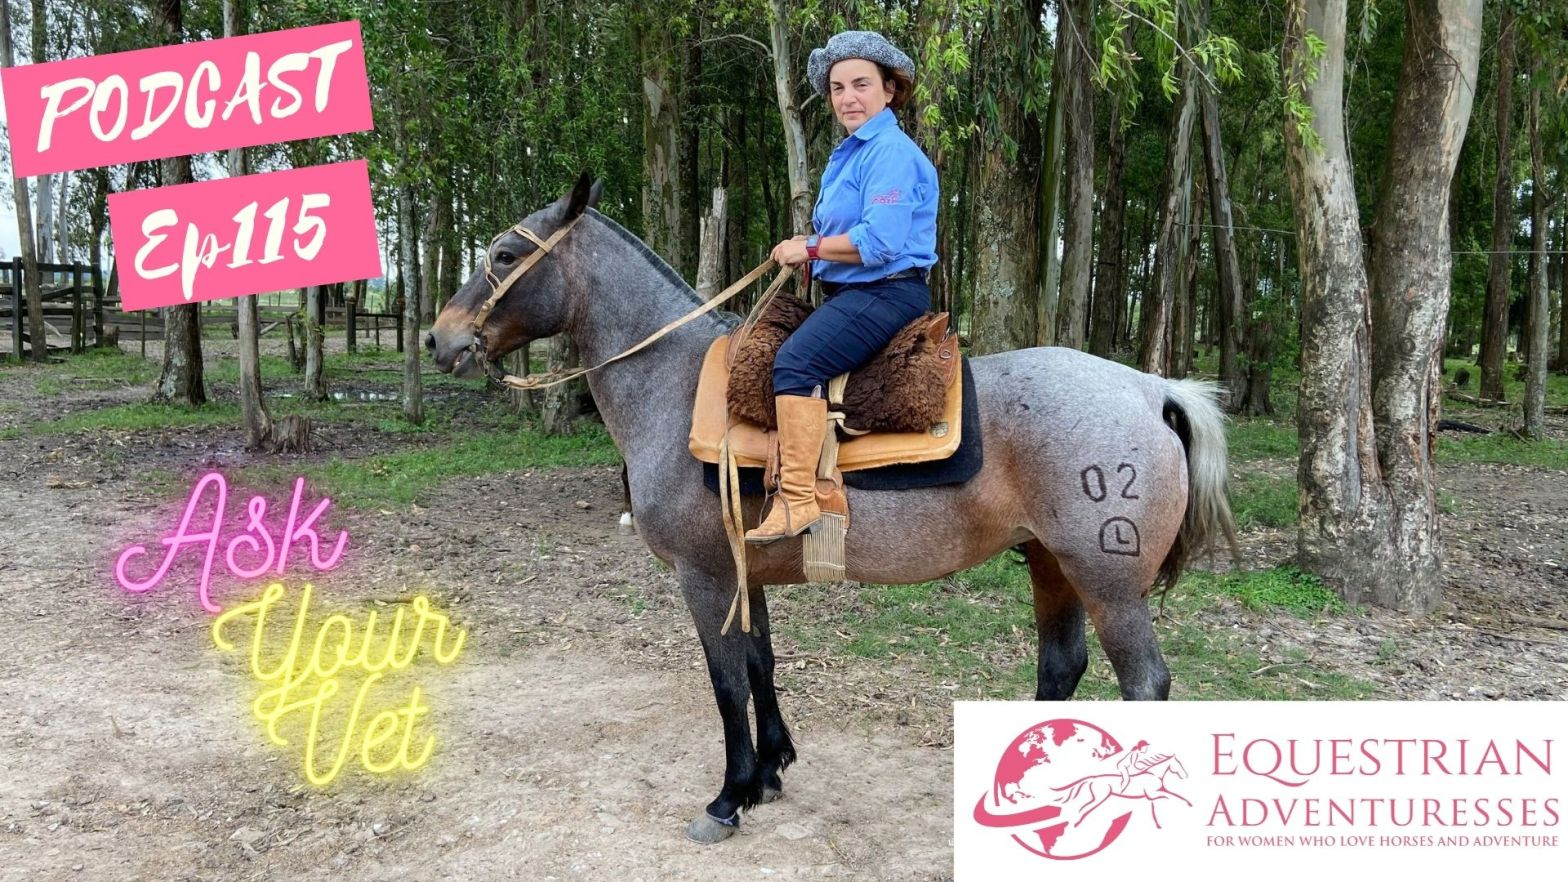 Equestrian Adventuresses Travel and Horse Podcast Ep 115 - Ask Your Vet